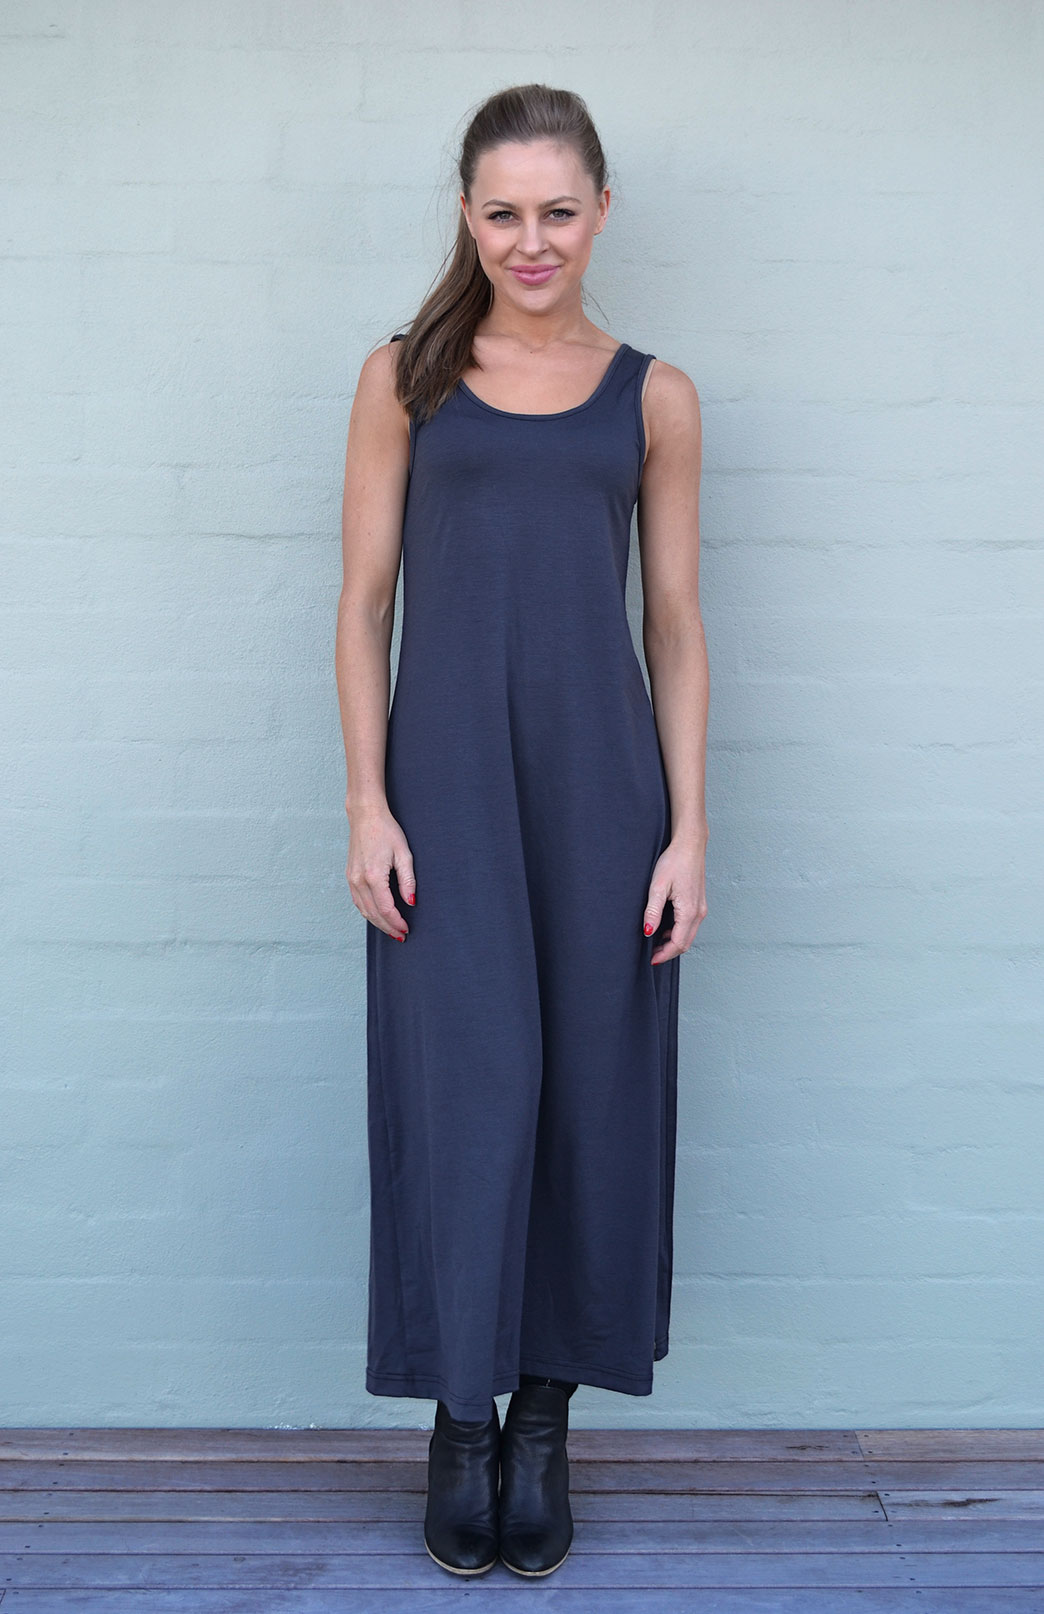 e216dca7081d0 Maxi Dress - Plain